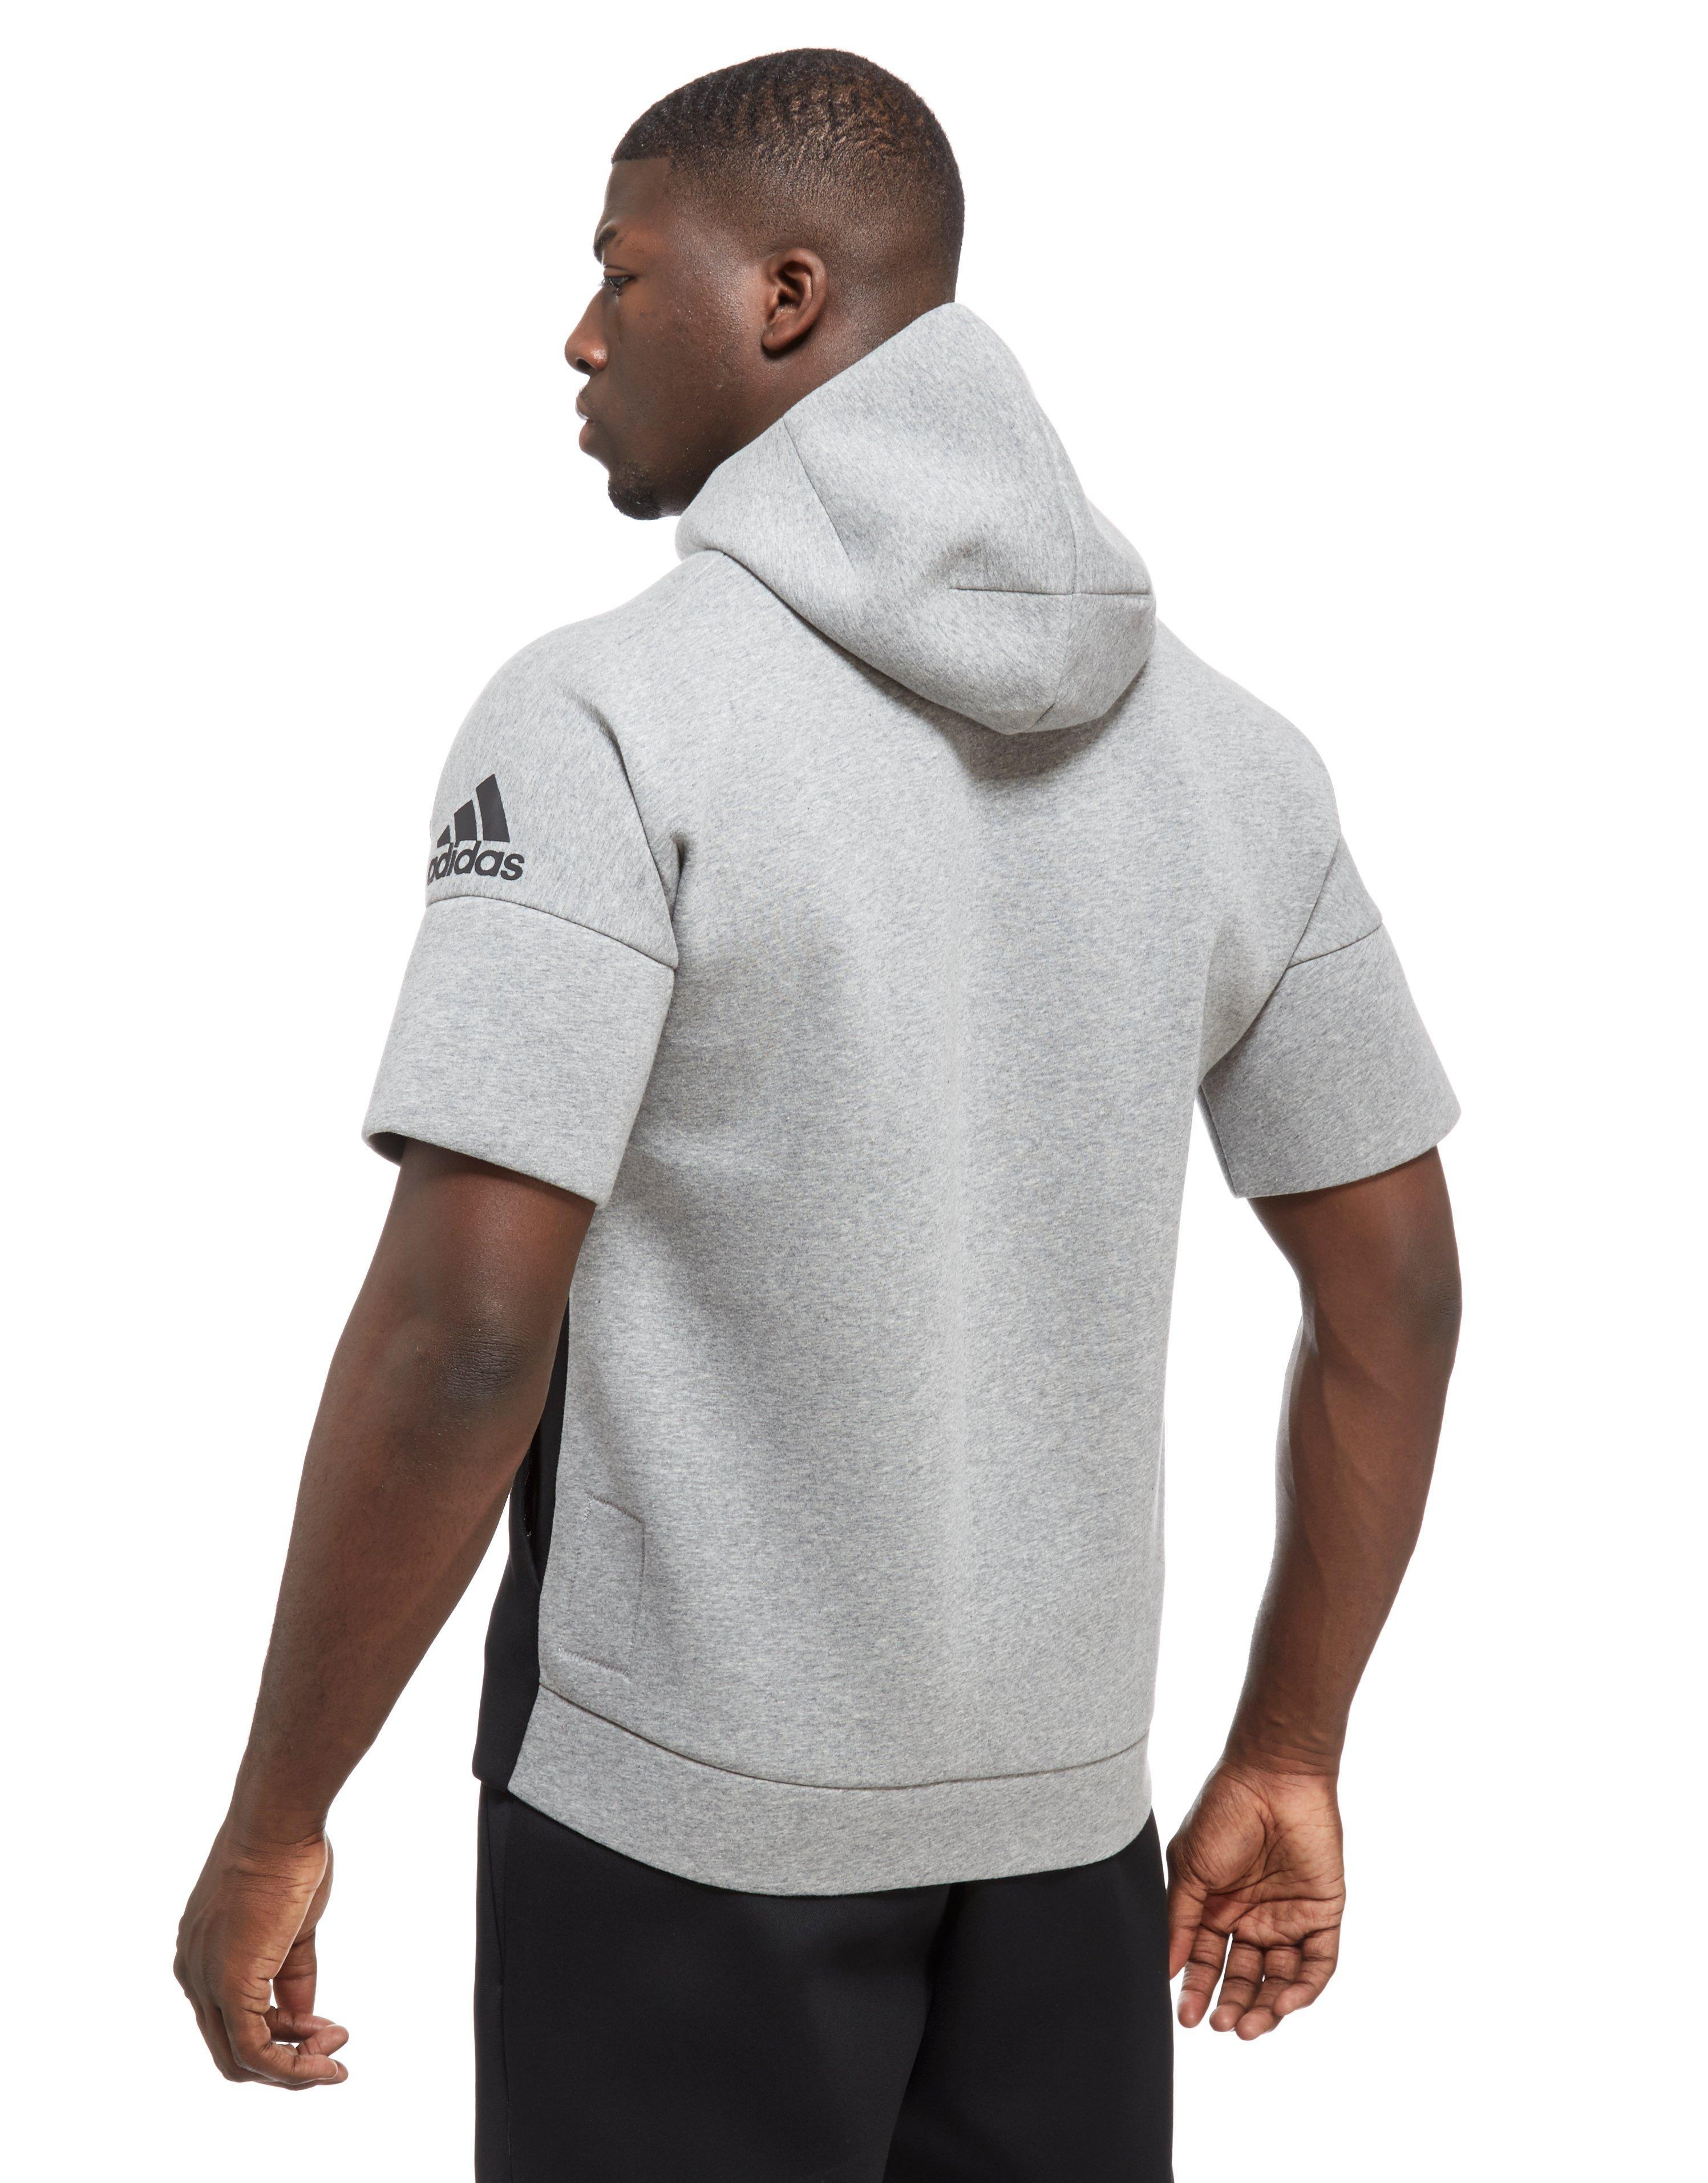 e4431a9ca adidas Z.n.e Short Sleeve Hoodie in Black for Men - Lyst